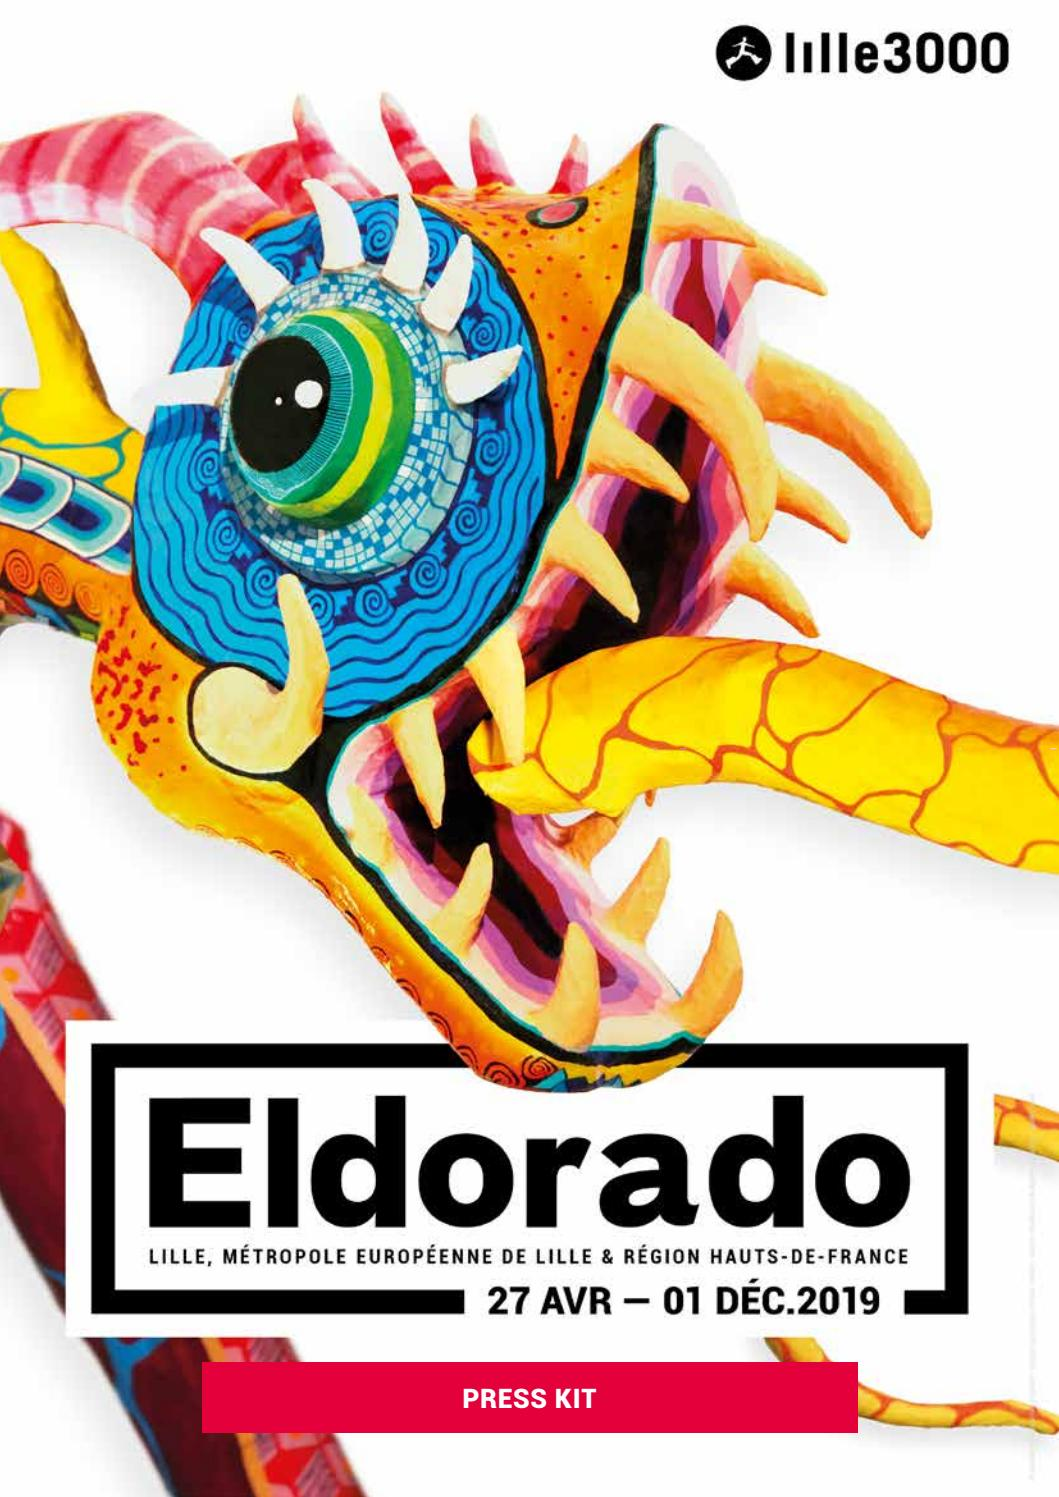 Press Kit Eldorado Lille3000 By Lille3000 Issuu